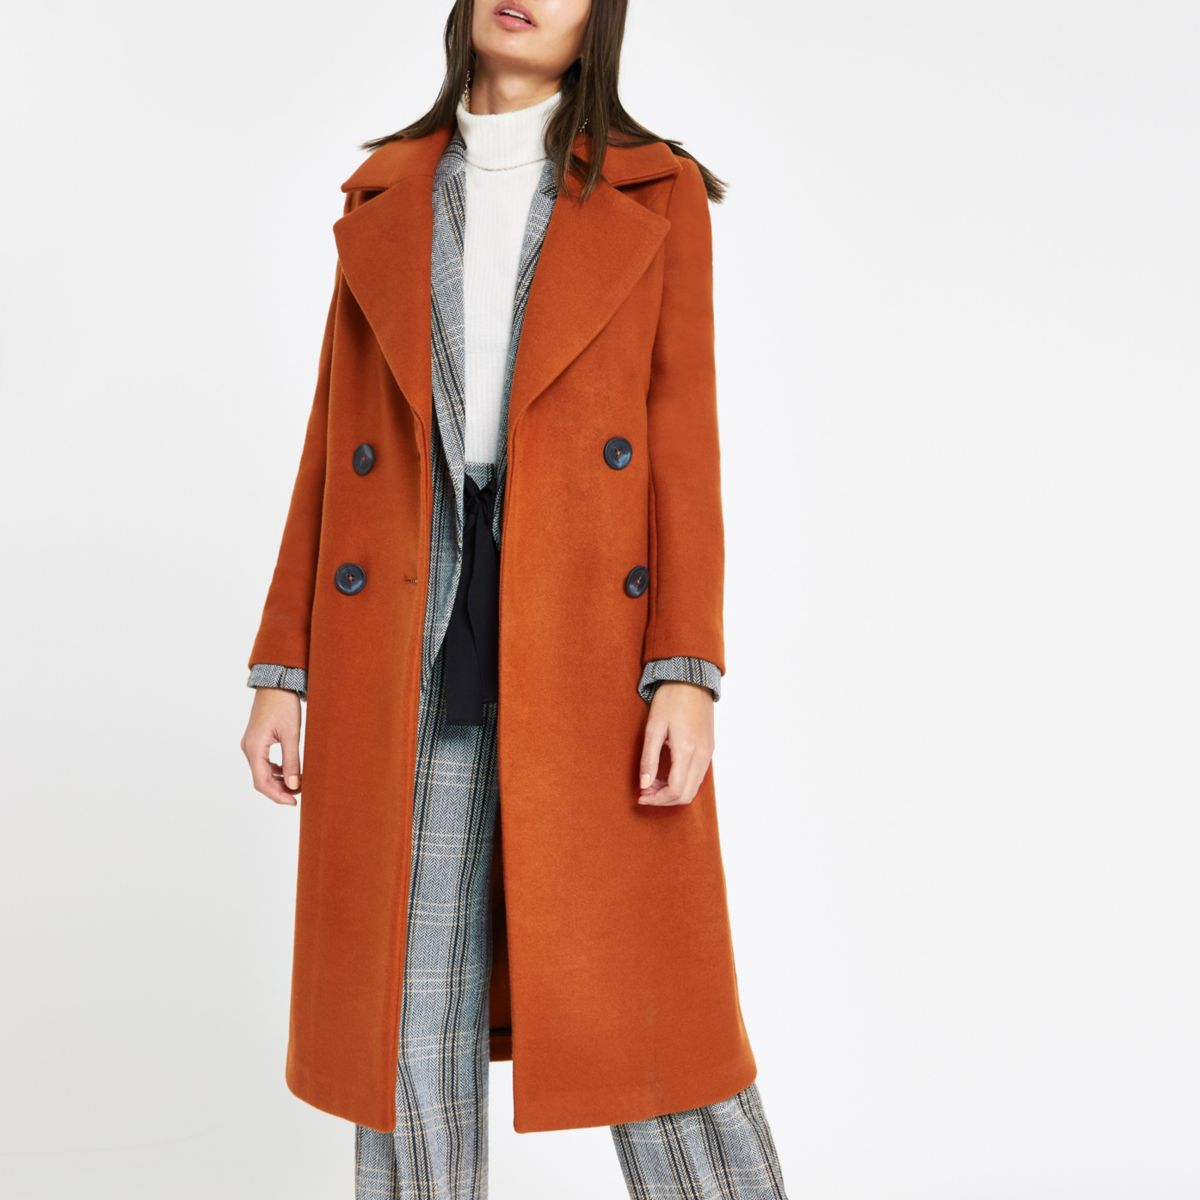 Brown long double breasted coat